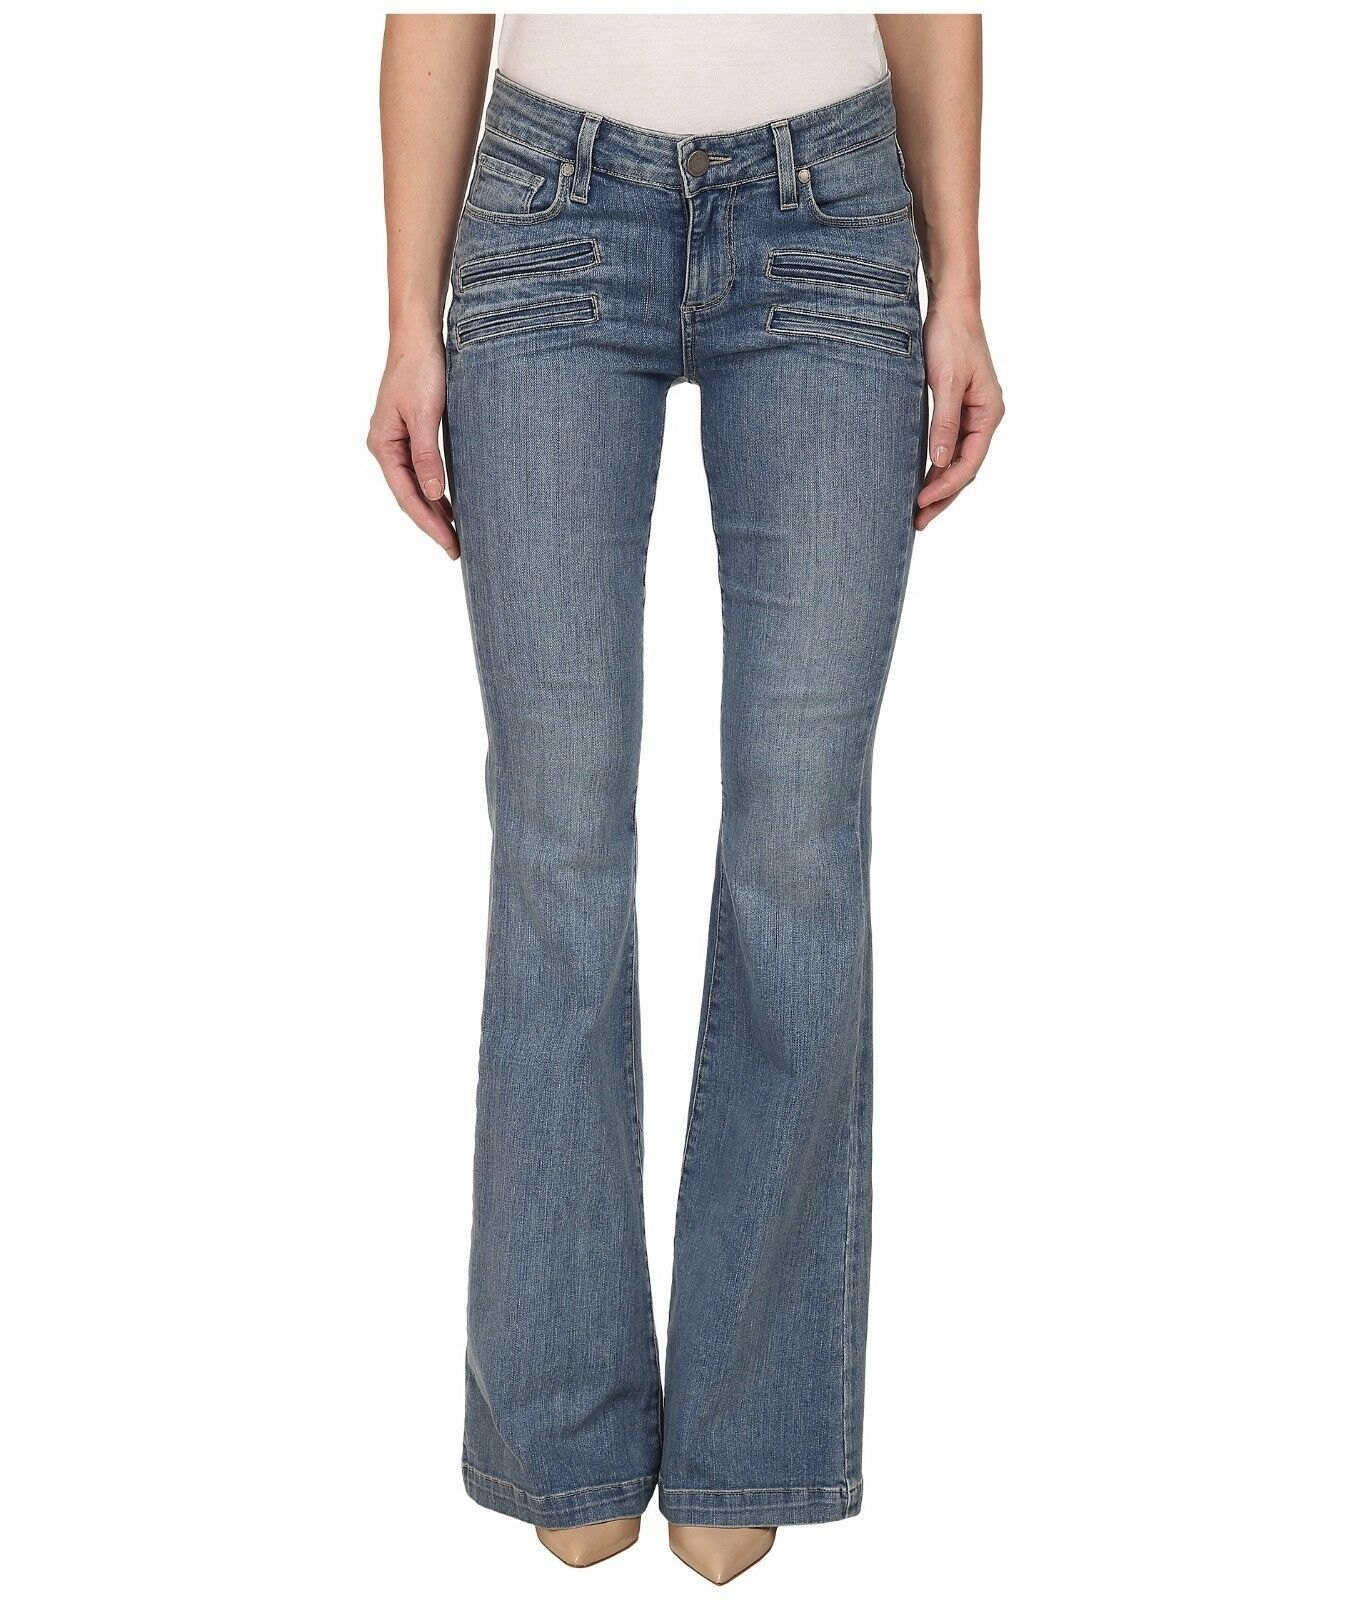 3de51a83dd11c Details about NWT PAIGE FIONA PAULINA NO WHISKERS MID RISE FLARE JEANS 27